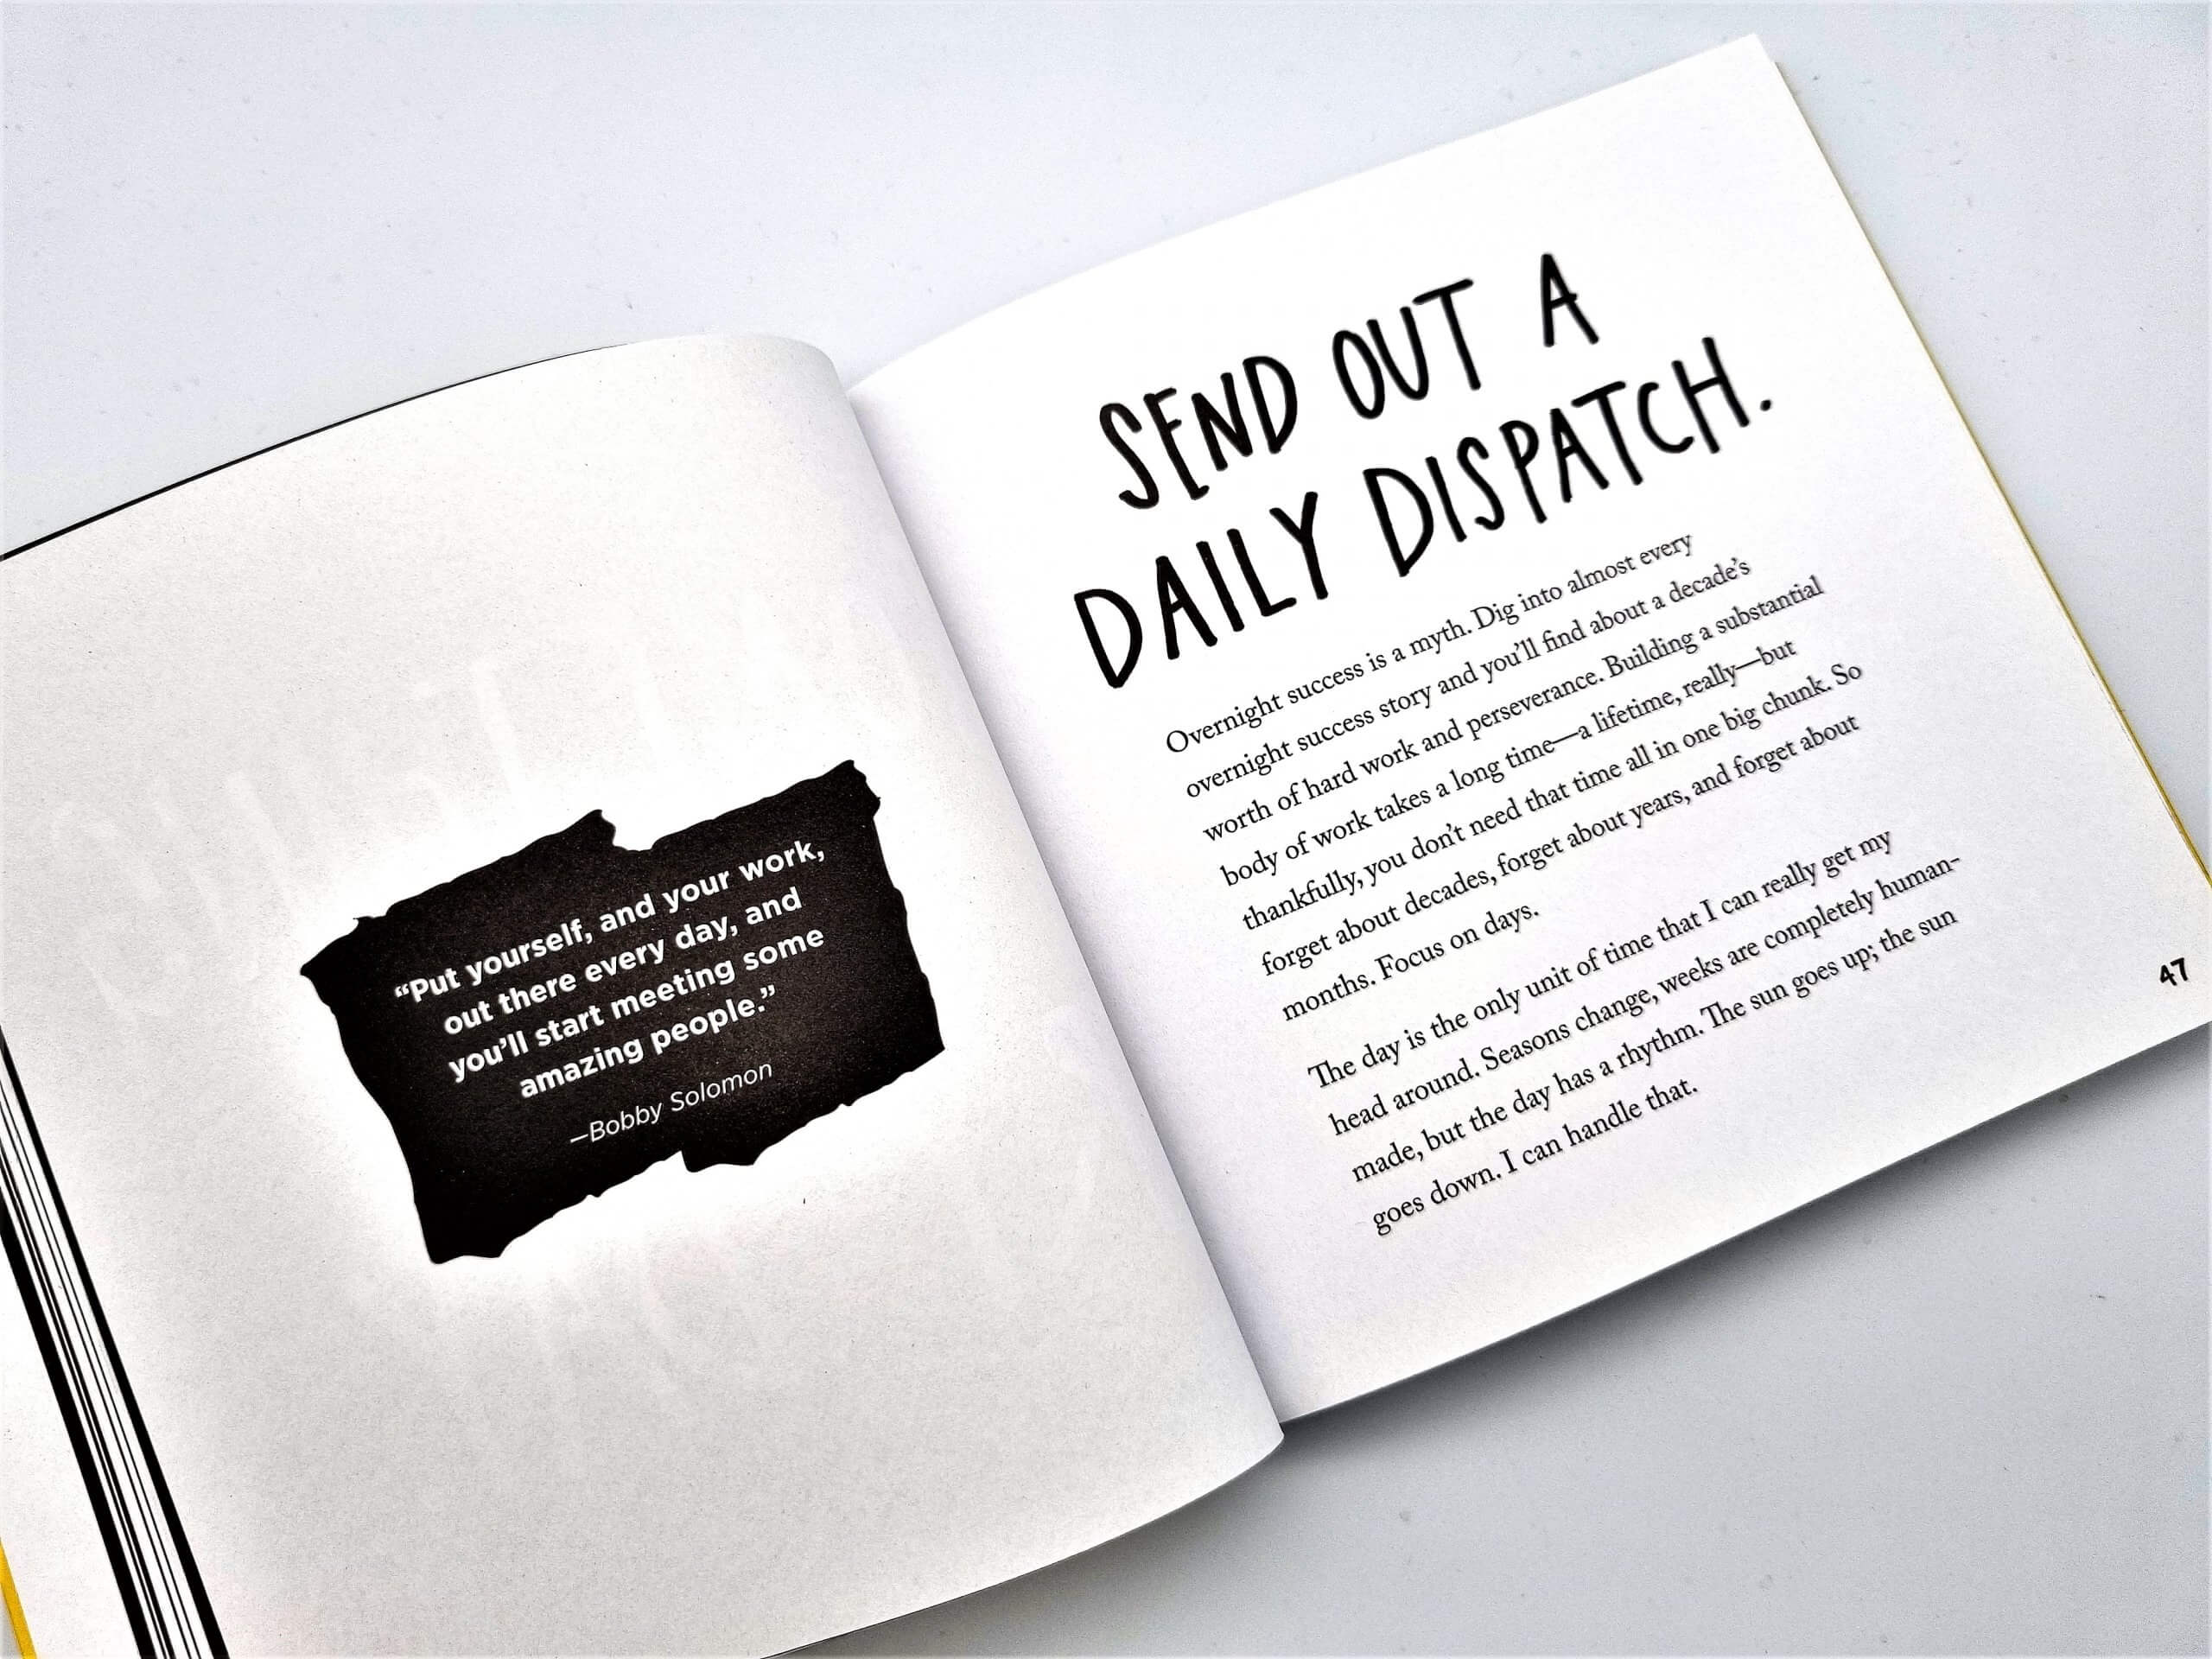 Show Your Work by Austin Kleon - Book Review - The Logo Creative (8)